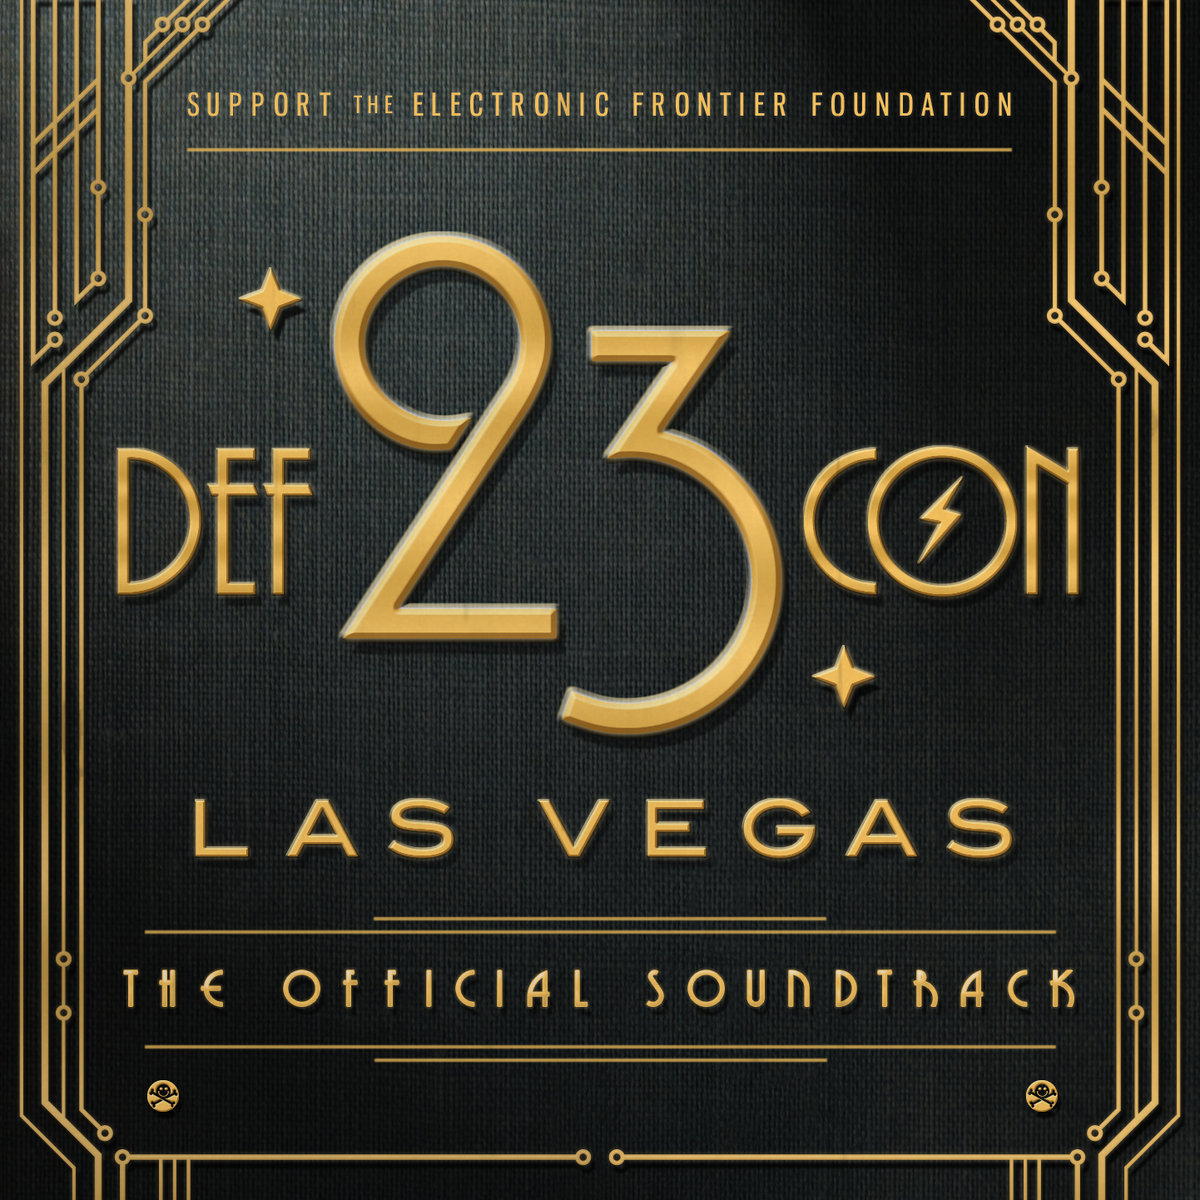 Mechanical Pressure & Cara Leigh - Inception @ 'DEF CON 23: The Official Soundtrack' album (bass, charity)